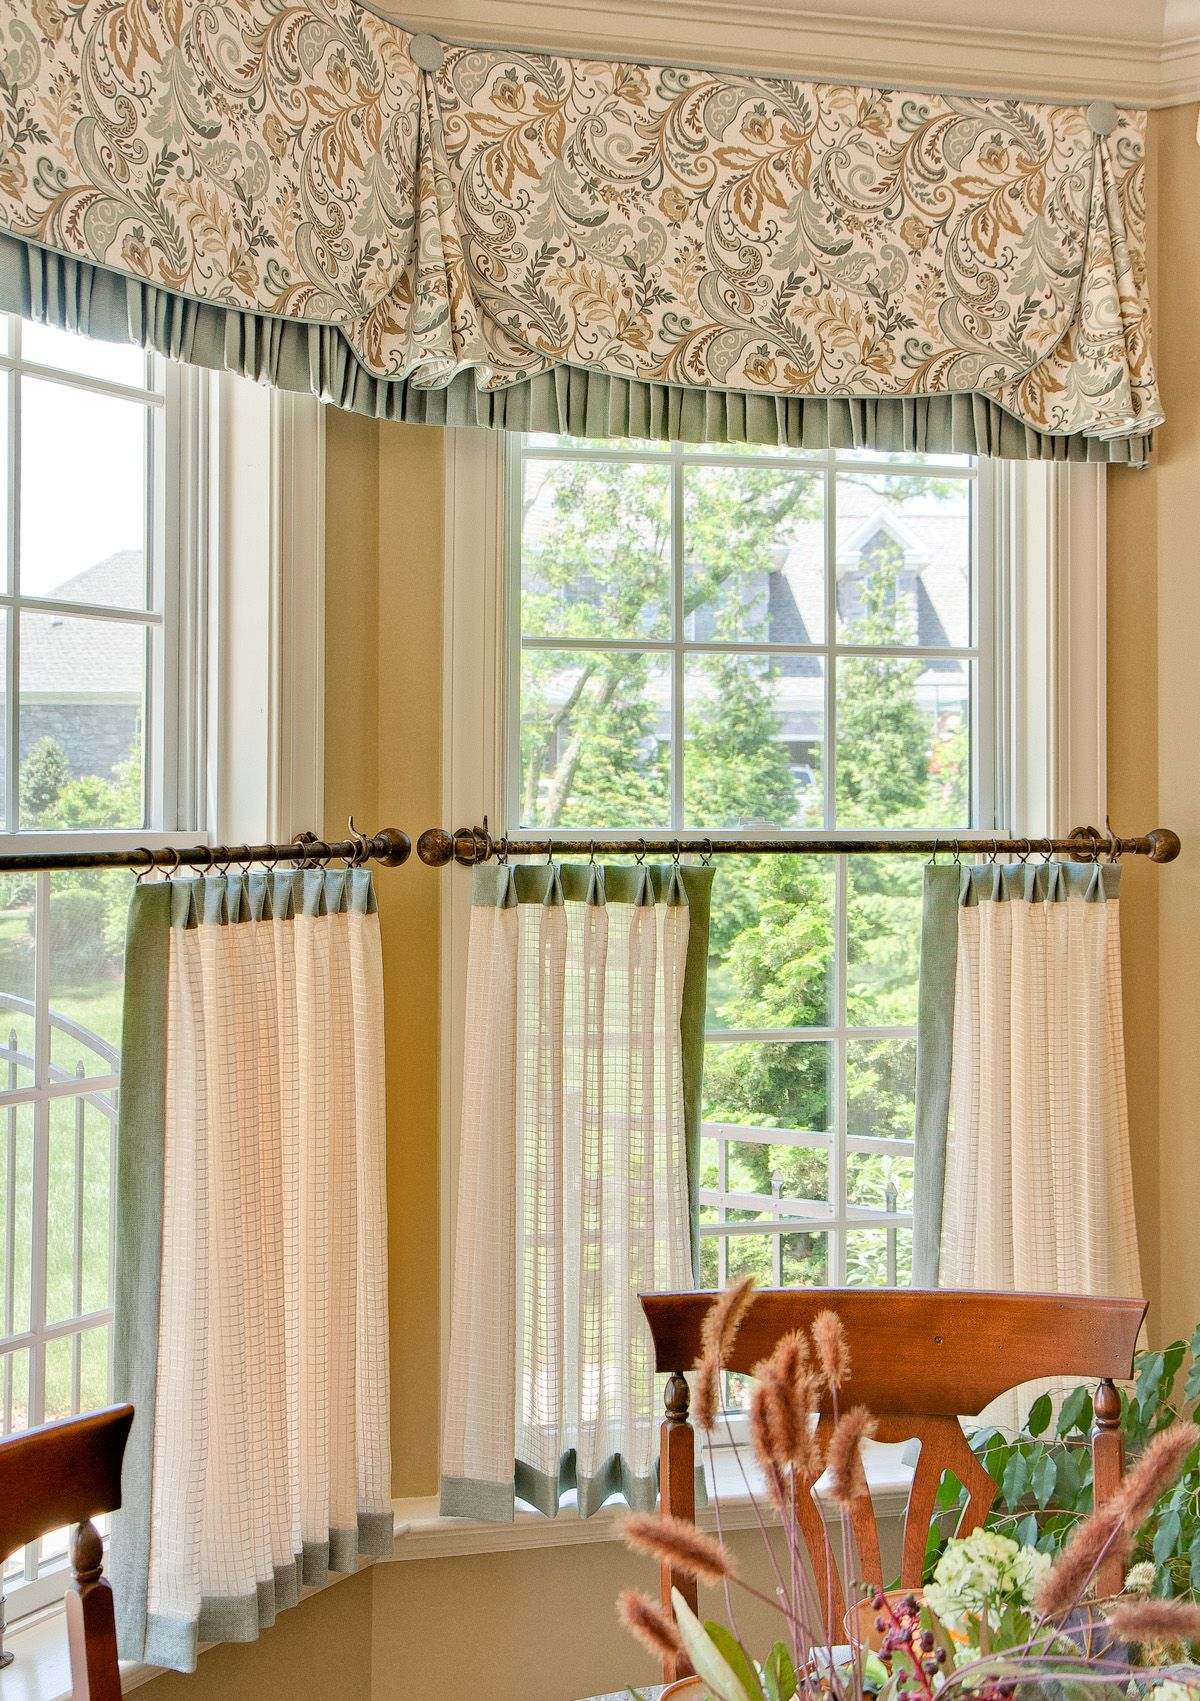 Kitchen Curtains For Bay Windows Boos Block Island A Casual Window Treatment Consisting Of Contrast Trimmed